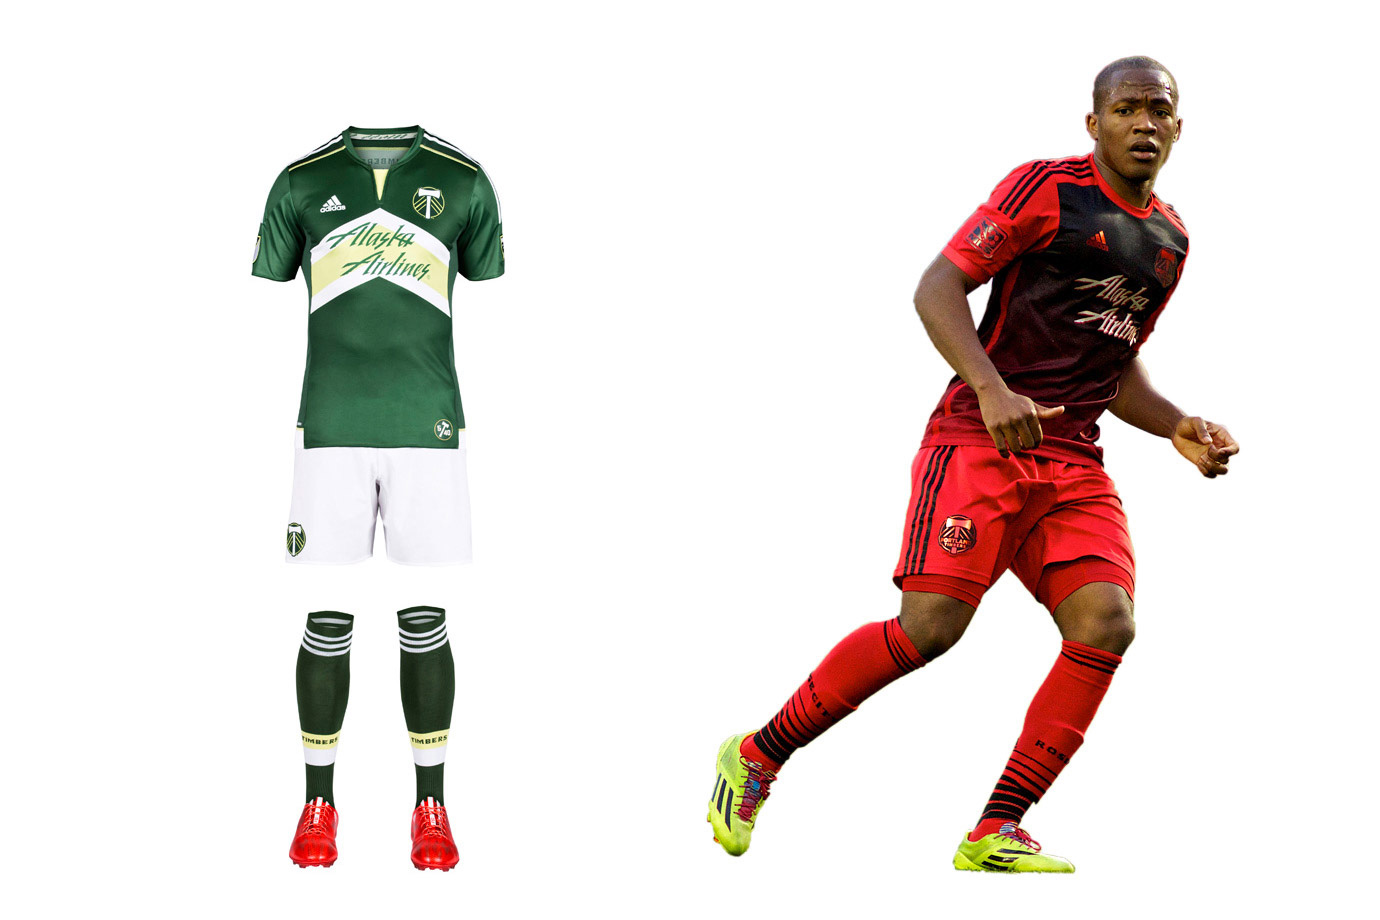 Portland Timbers uniform